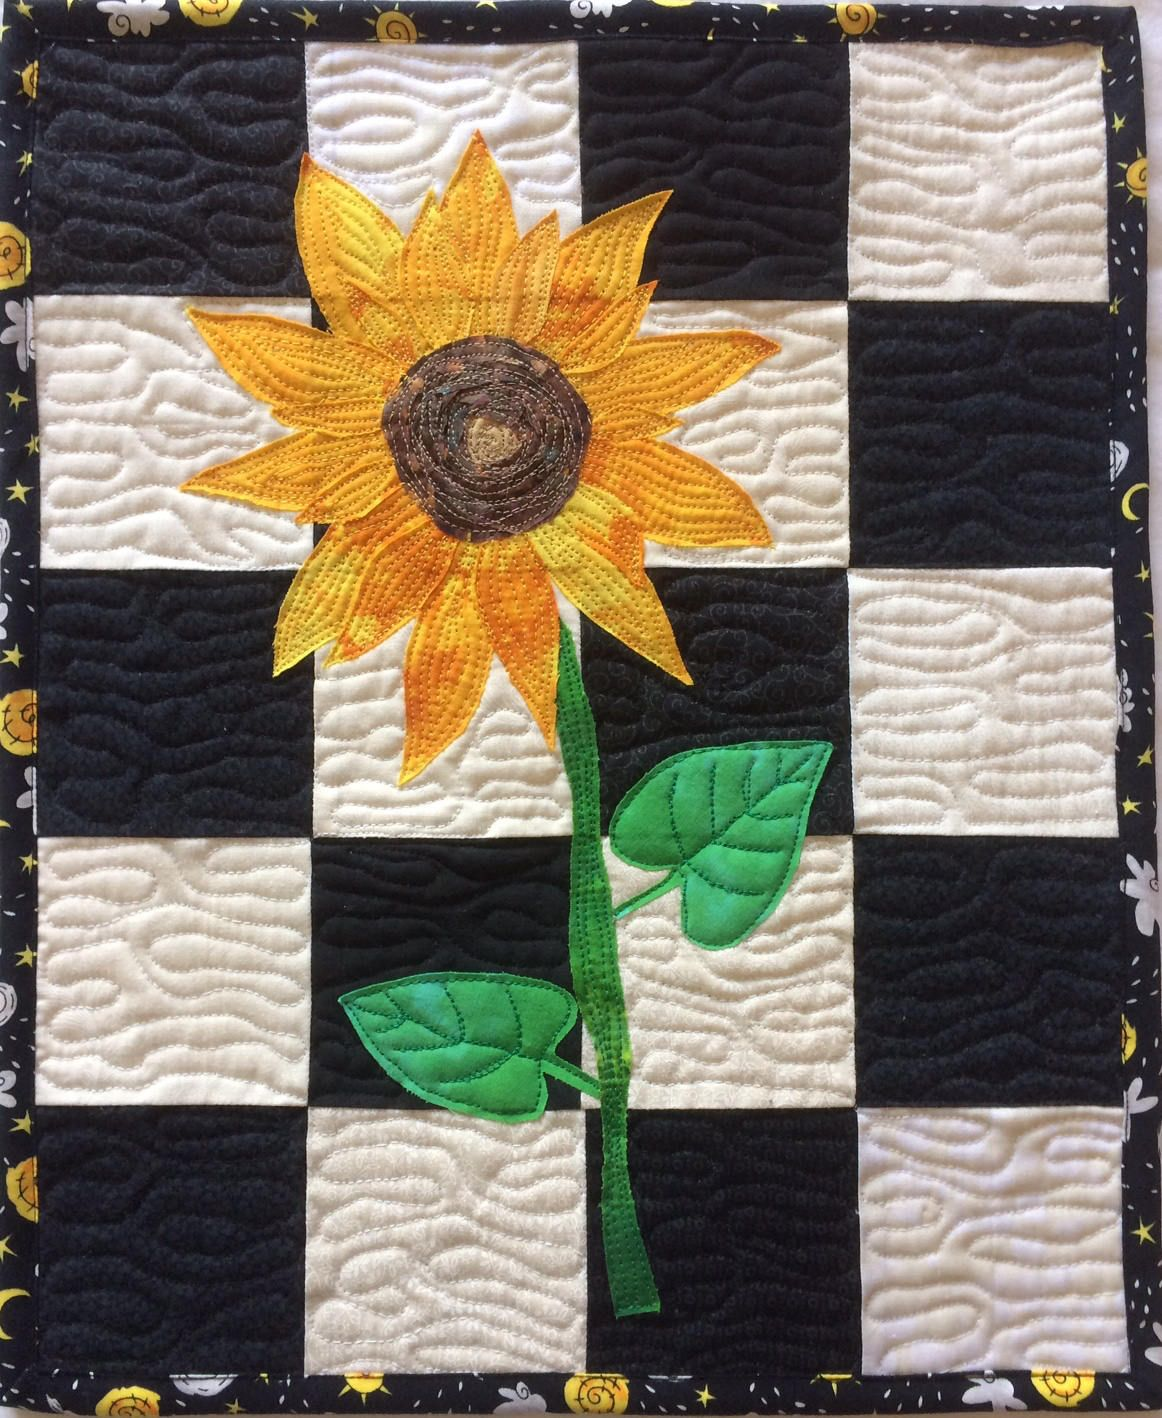 Art quilt sunflower landscape quilt flower quilted wall hanging black and white wall art home decor in black white and yellow by rachelfabricart on etsy